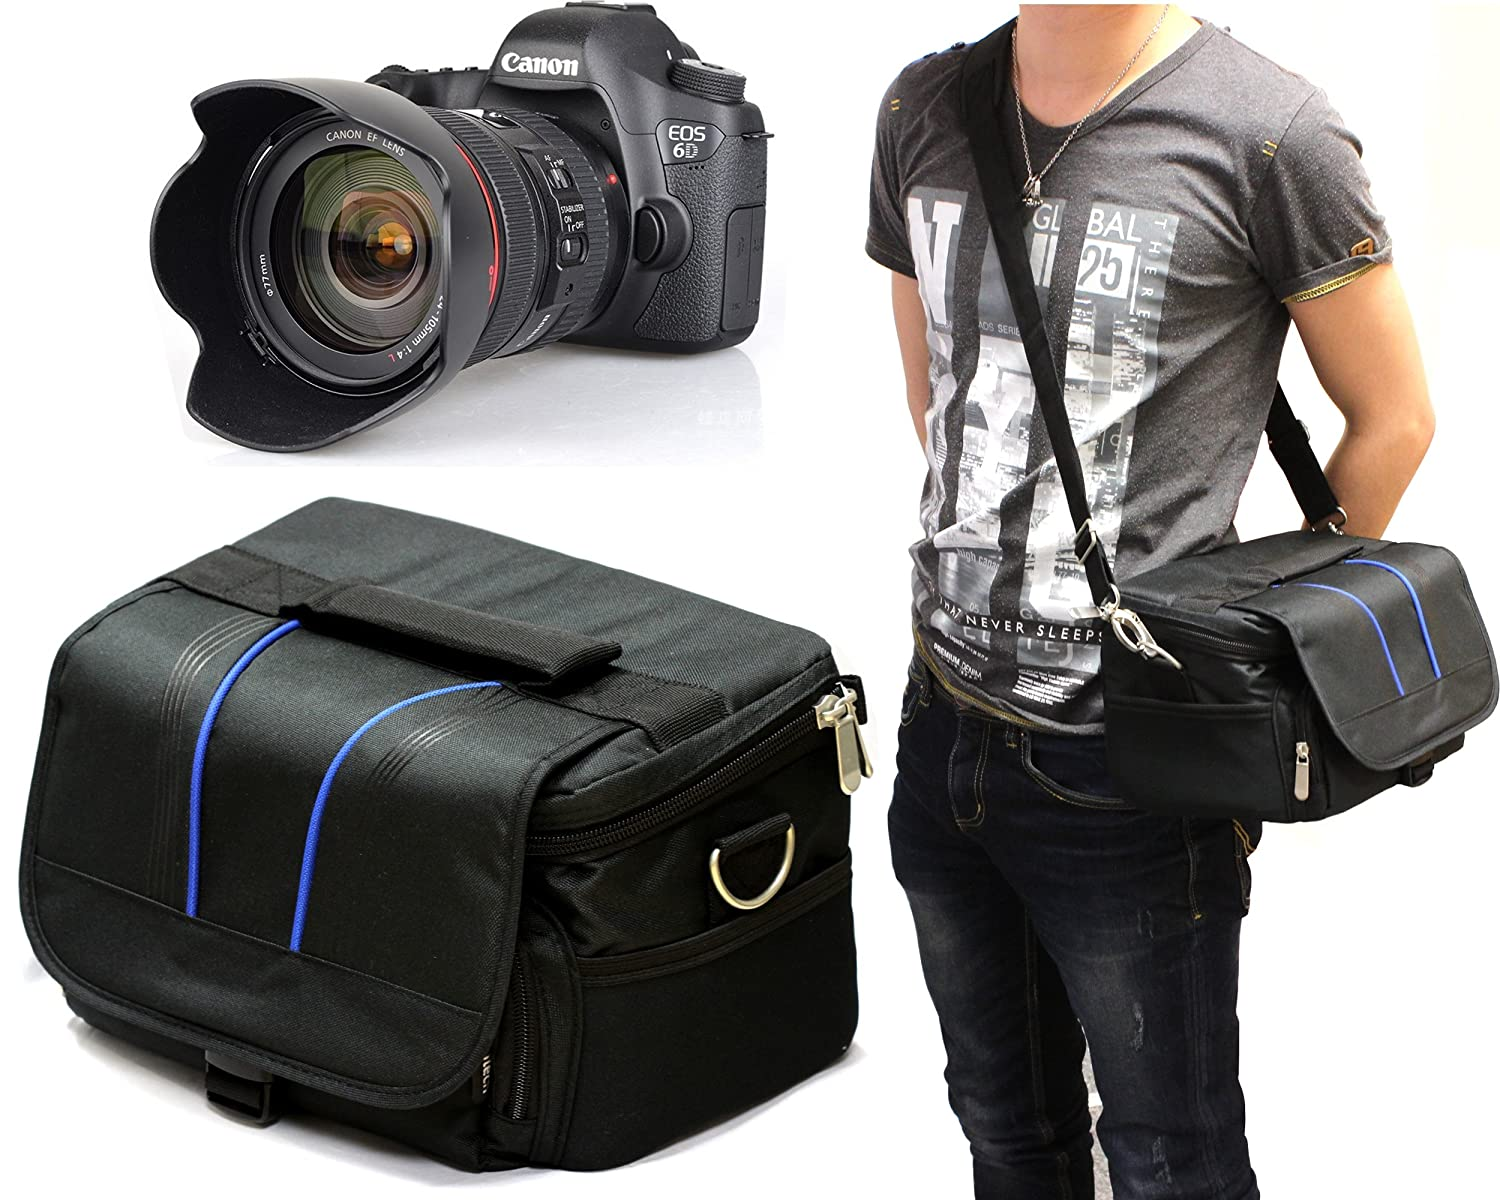 Navitech Black DSLR & Lense Camera Bag For CANON EOS: Amazon.co.uk ...